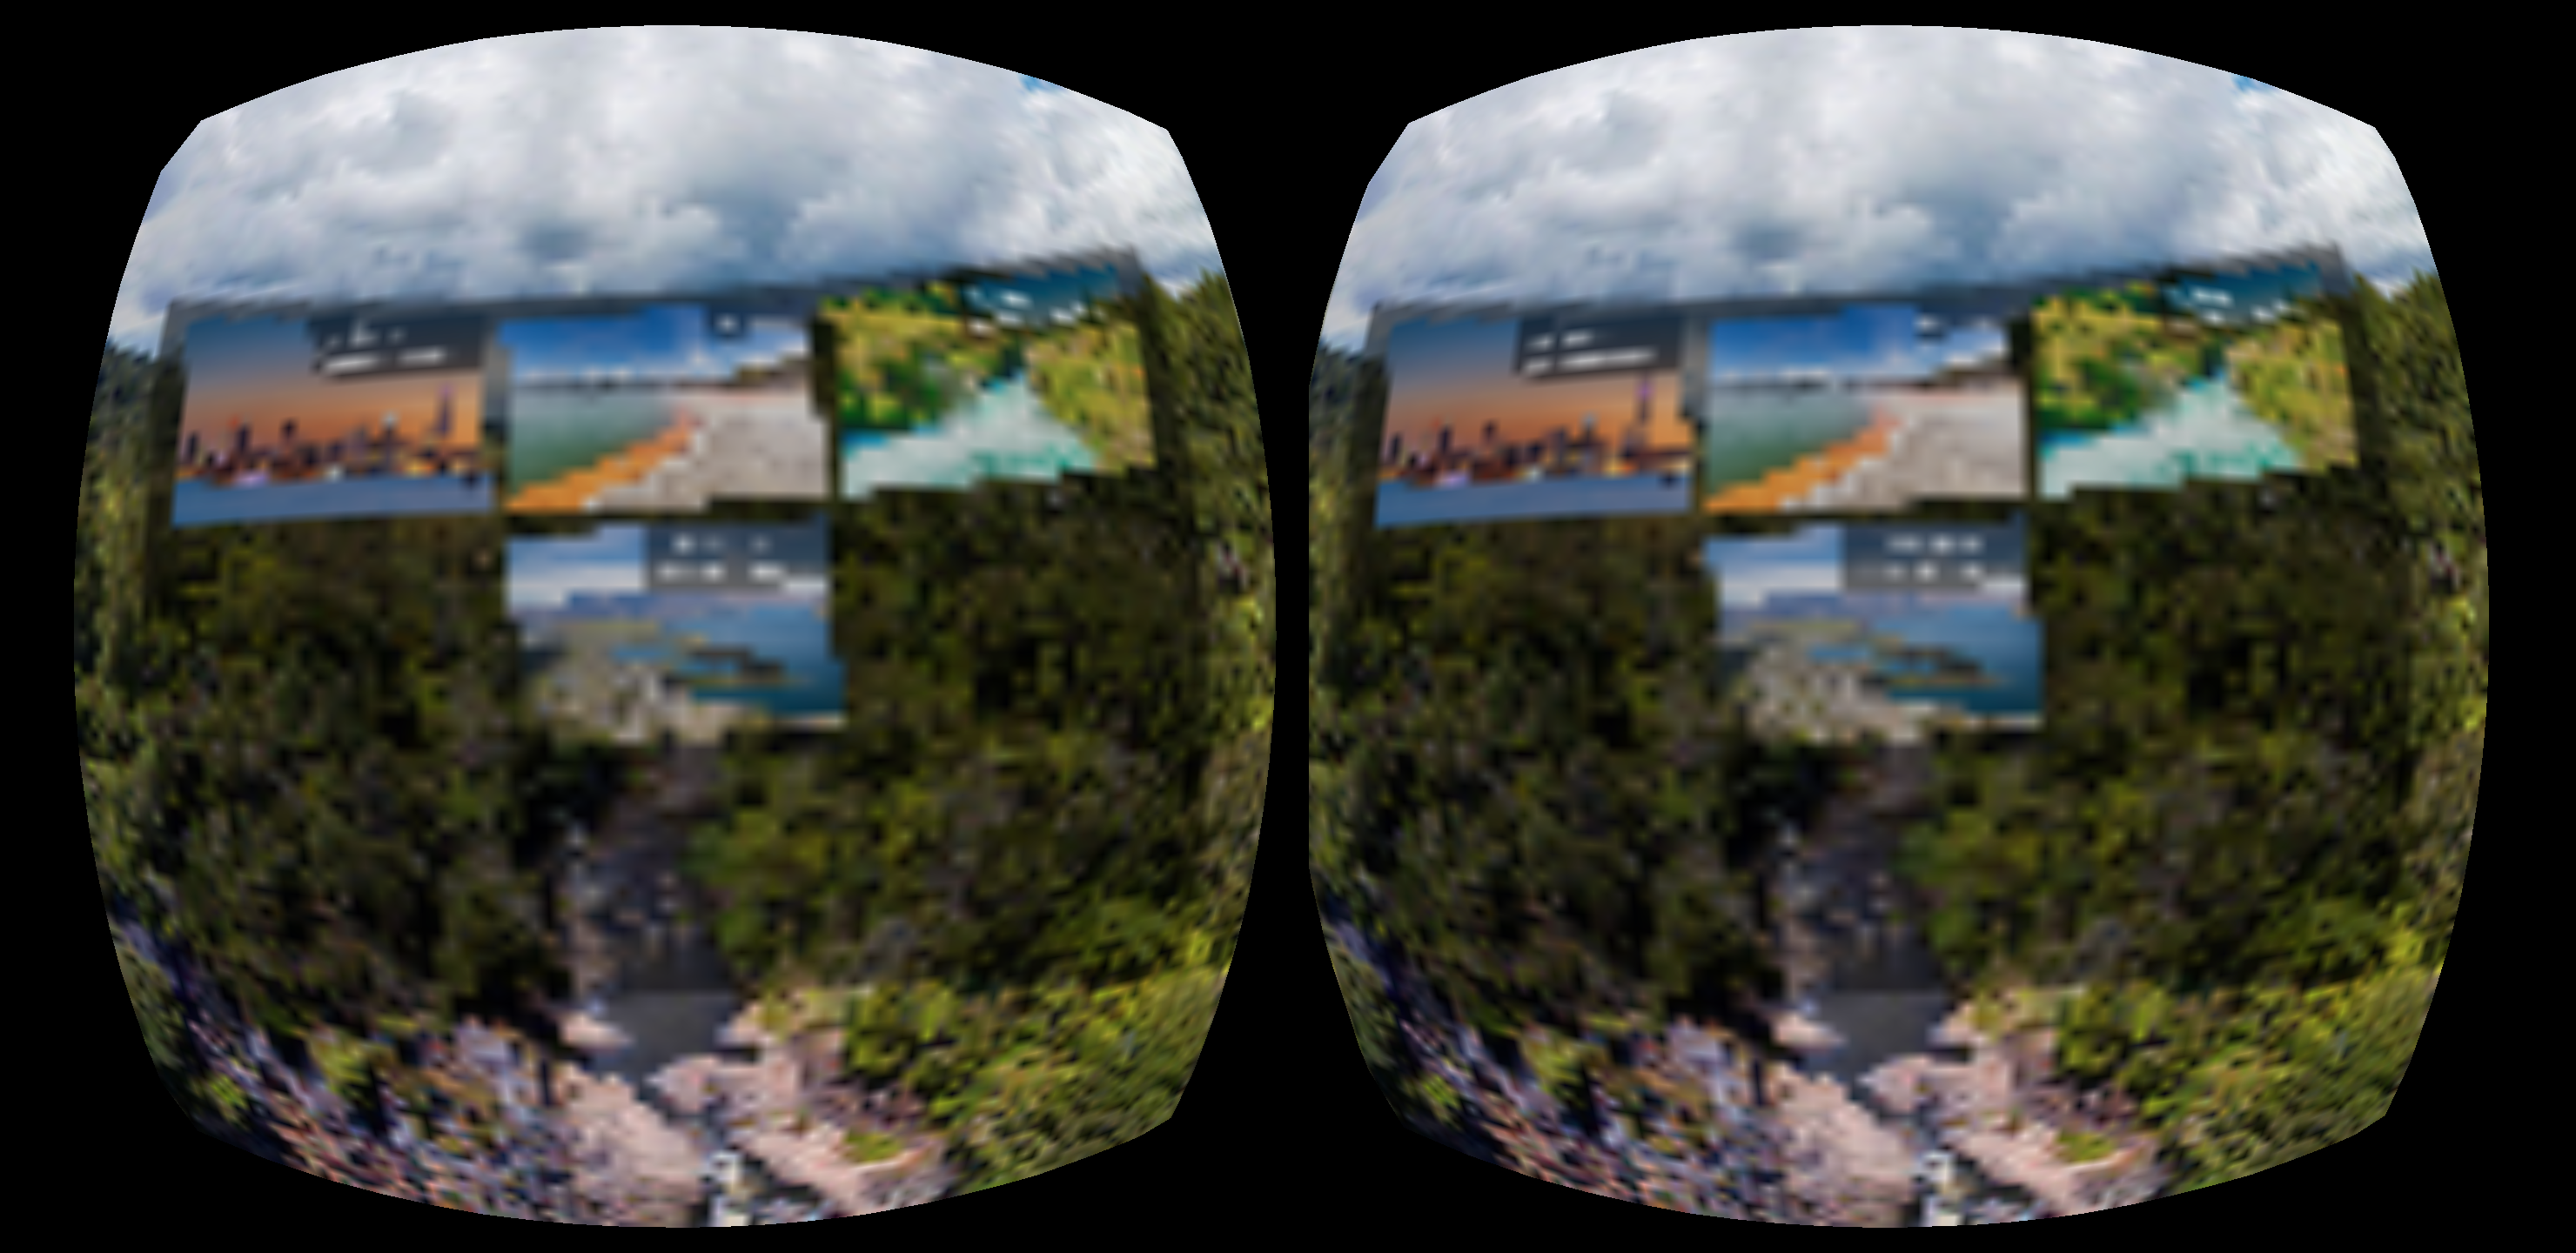 Display heavily pixelated image in VR Mode on Oculus Browser · Issue